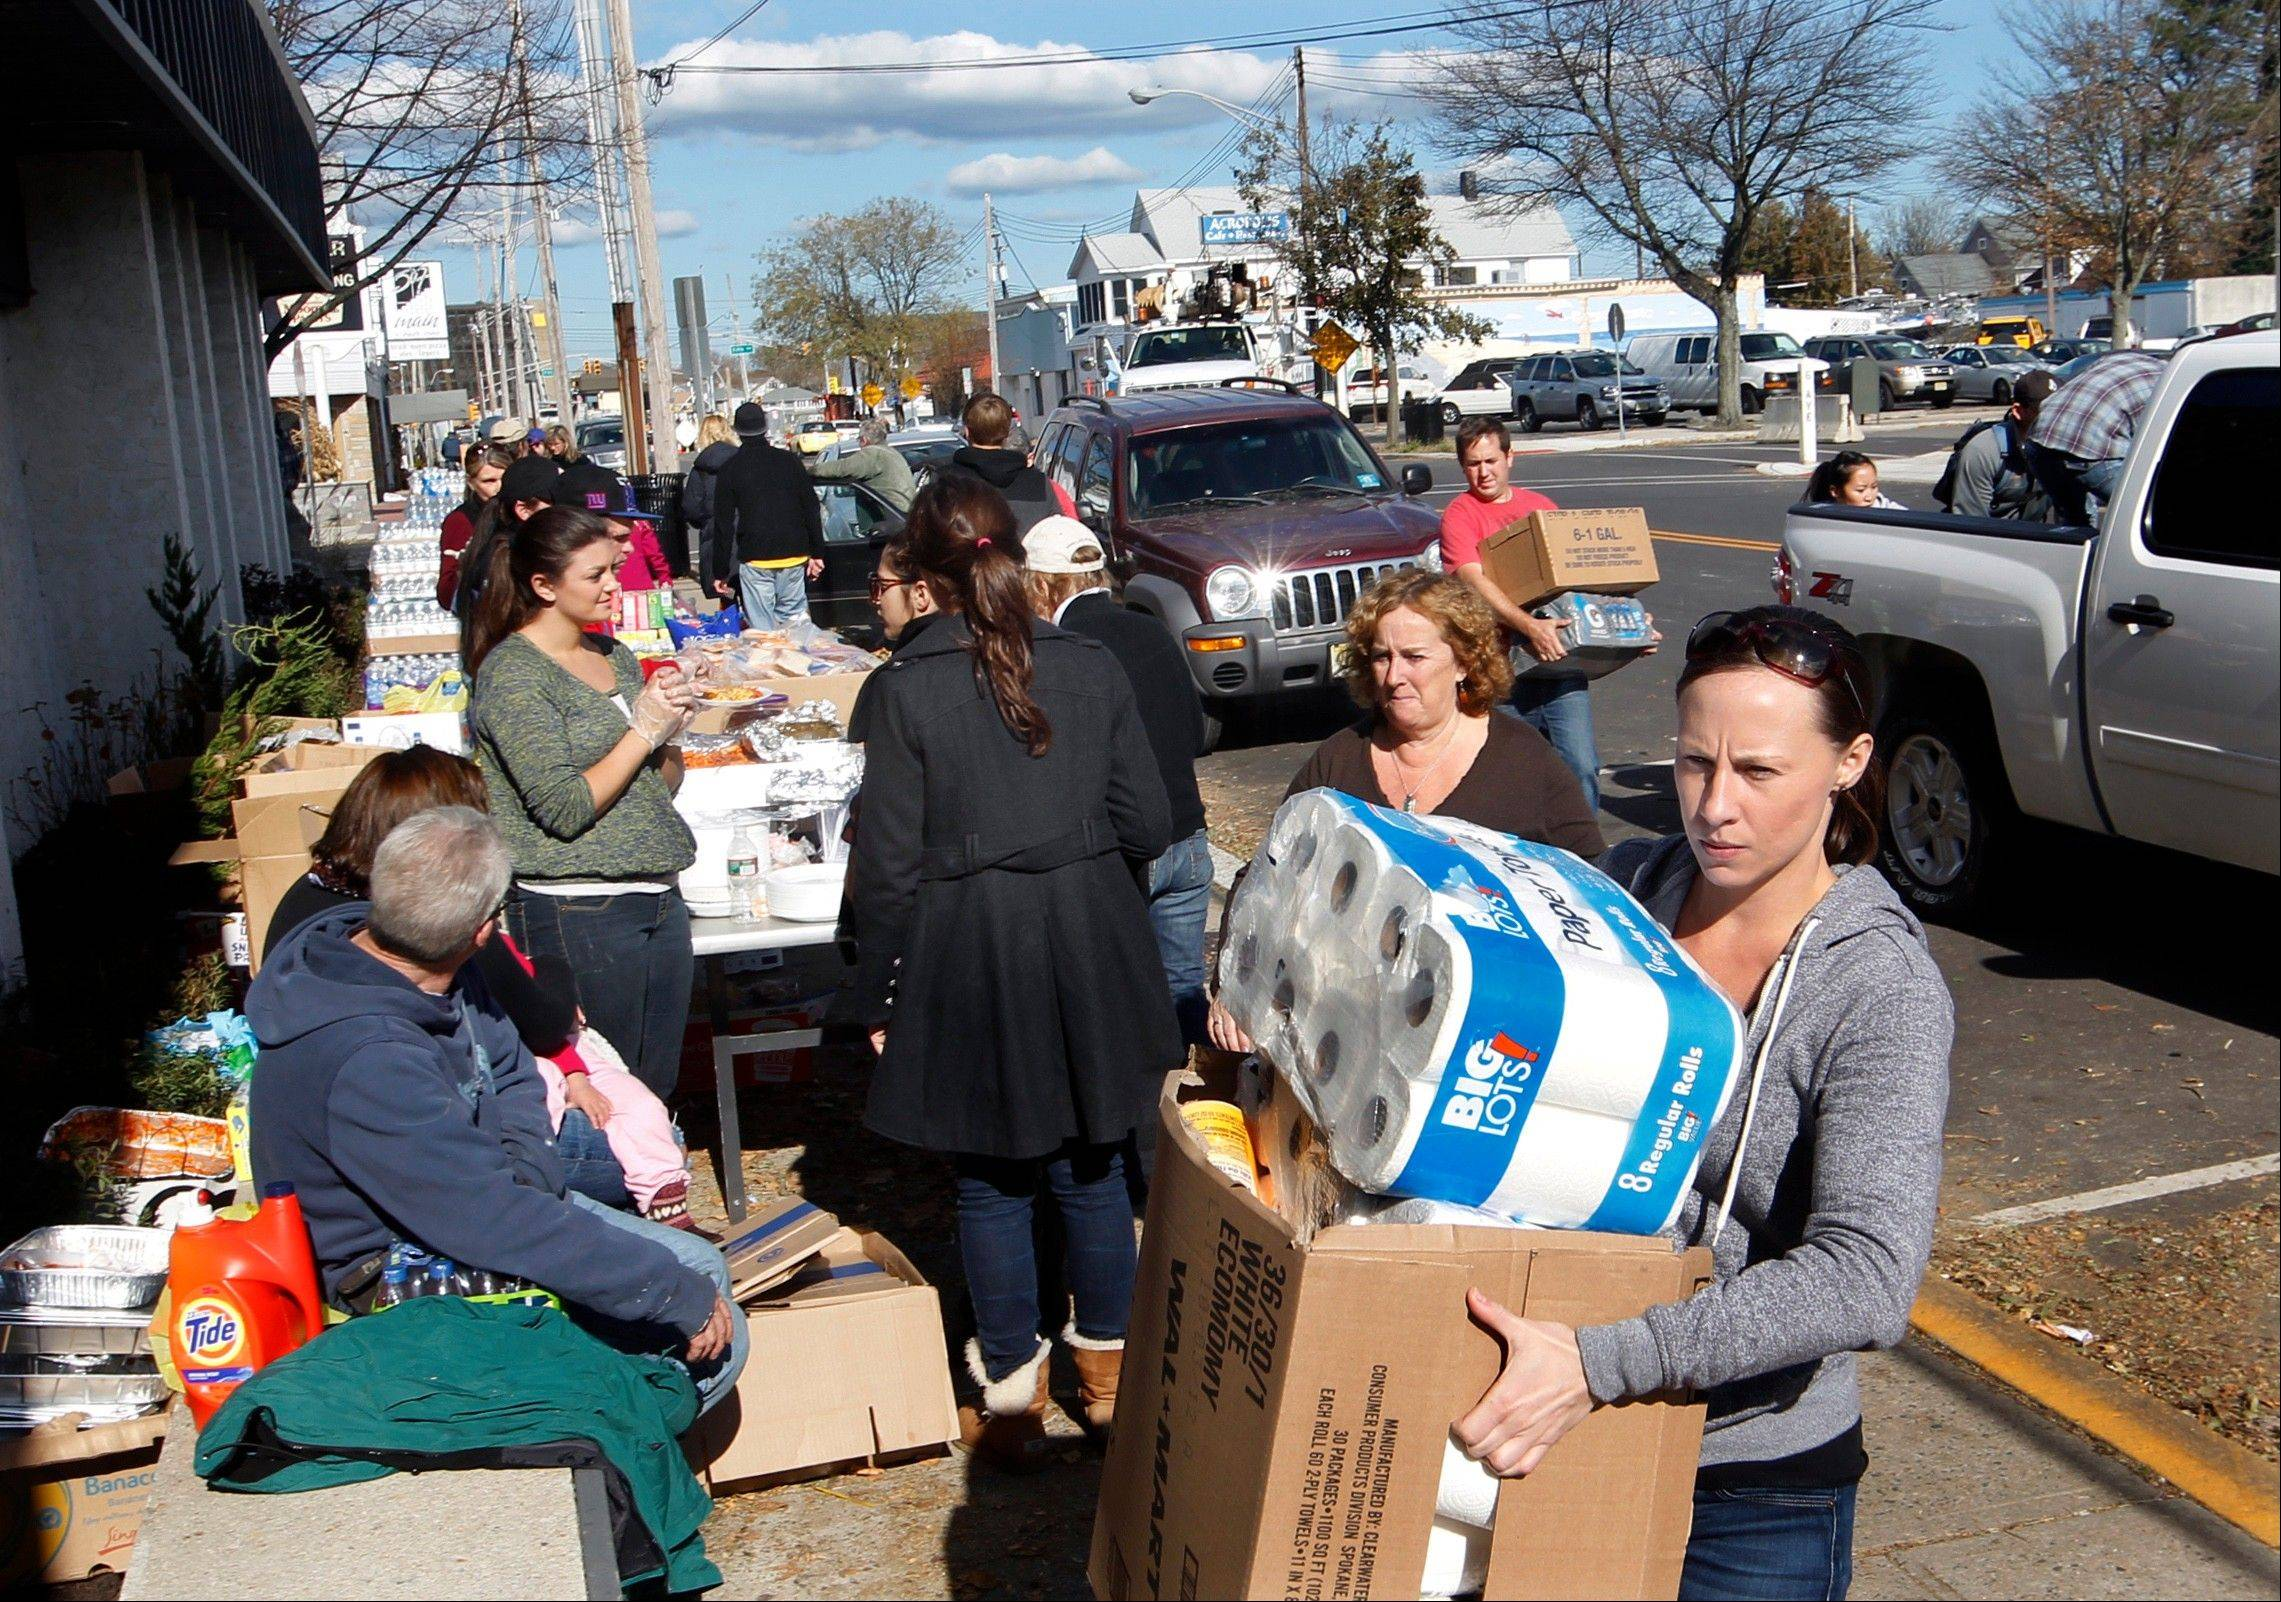 Volunteers carry donated goods into the Belmar recreation center Sunday in Belmar, N.J. After being battered by Monday's storm surge by Superstorm Sandy much of the region is still without power and many homes have been damaged.